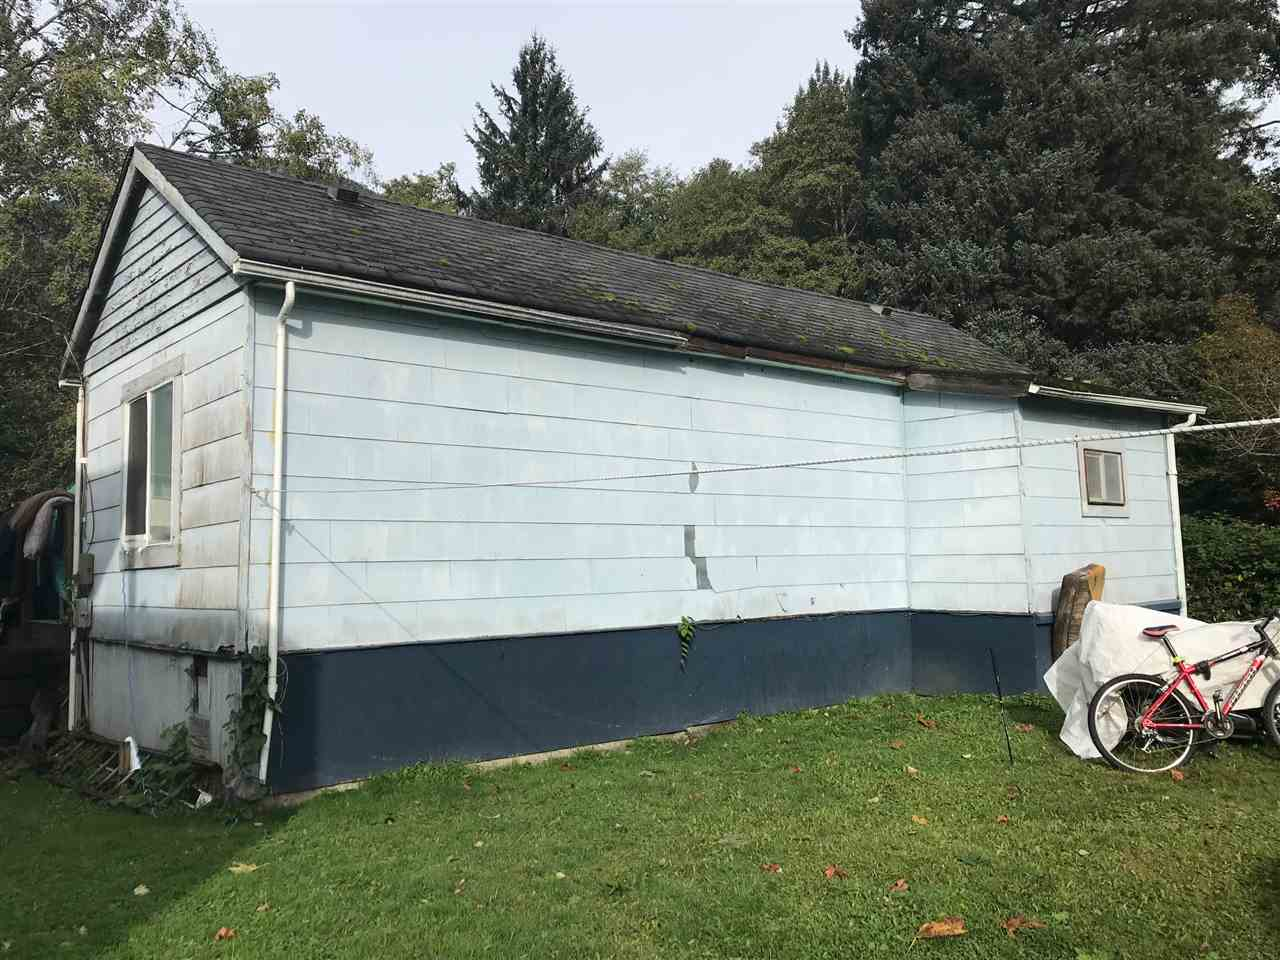 """Build your DREAM HOME with an option for a carriage house as this flat, corner lot has lane access. RS-2 zoning allows potential for a duplex. Tenants pay $1300.00 per month and would like to stay. Dentville is known as a family friendly neighbourhood as well as """"the heart of Squamish""""; all within blocks of schools including Les Aigions which is a French Language School, coffee shop, Back Country Brewing, downtown Squamish and walking trails. This home is priced to sell!"""